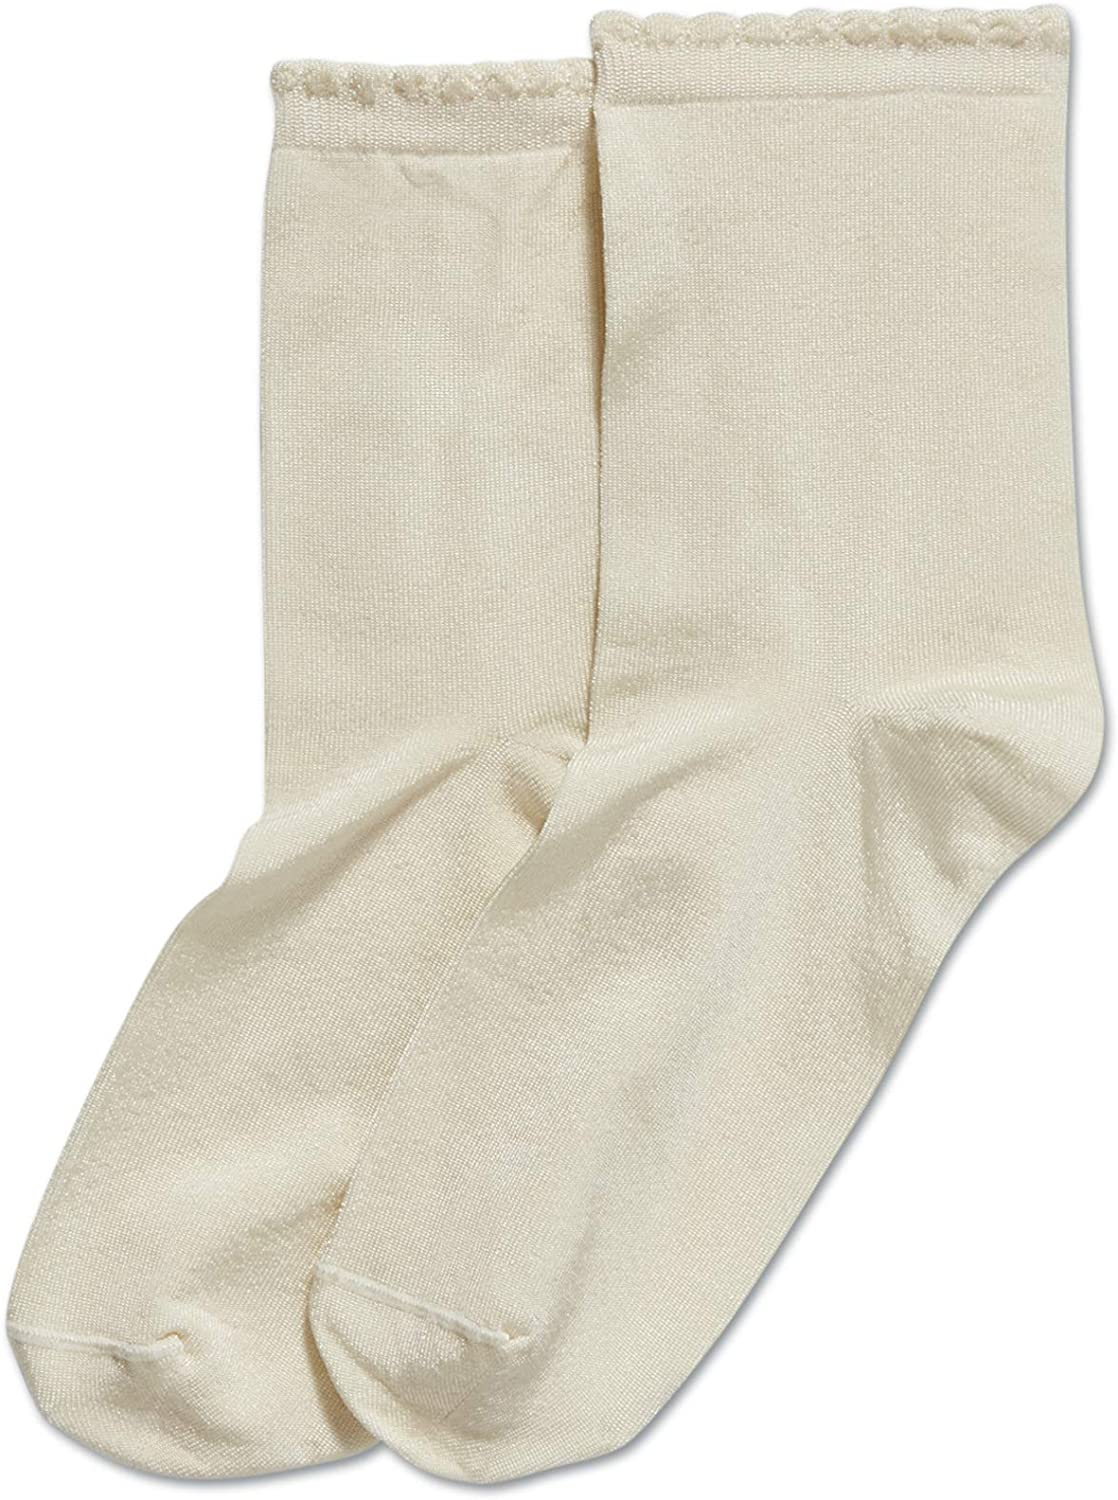 HUE womens Casual Knit Shortie Ankle Socks